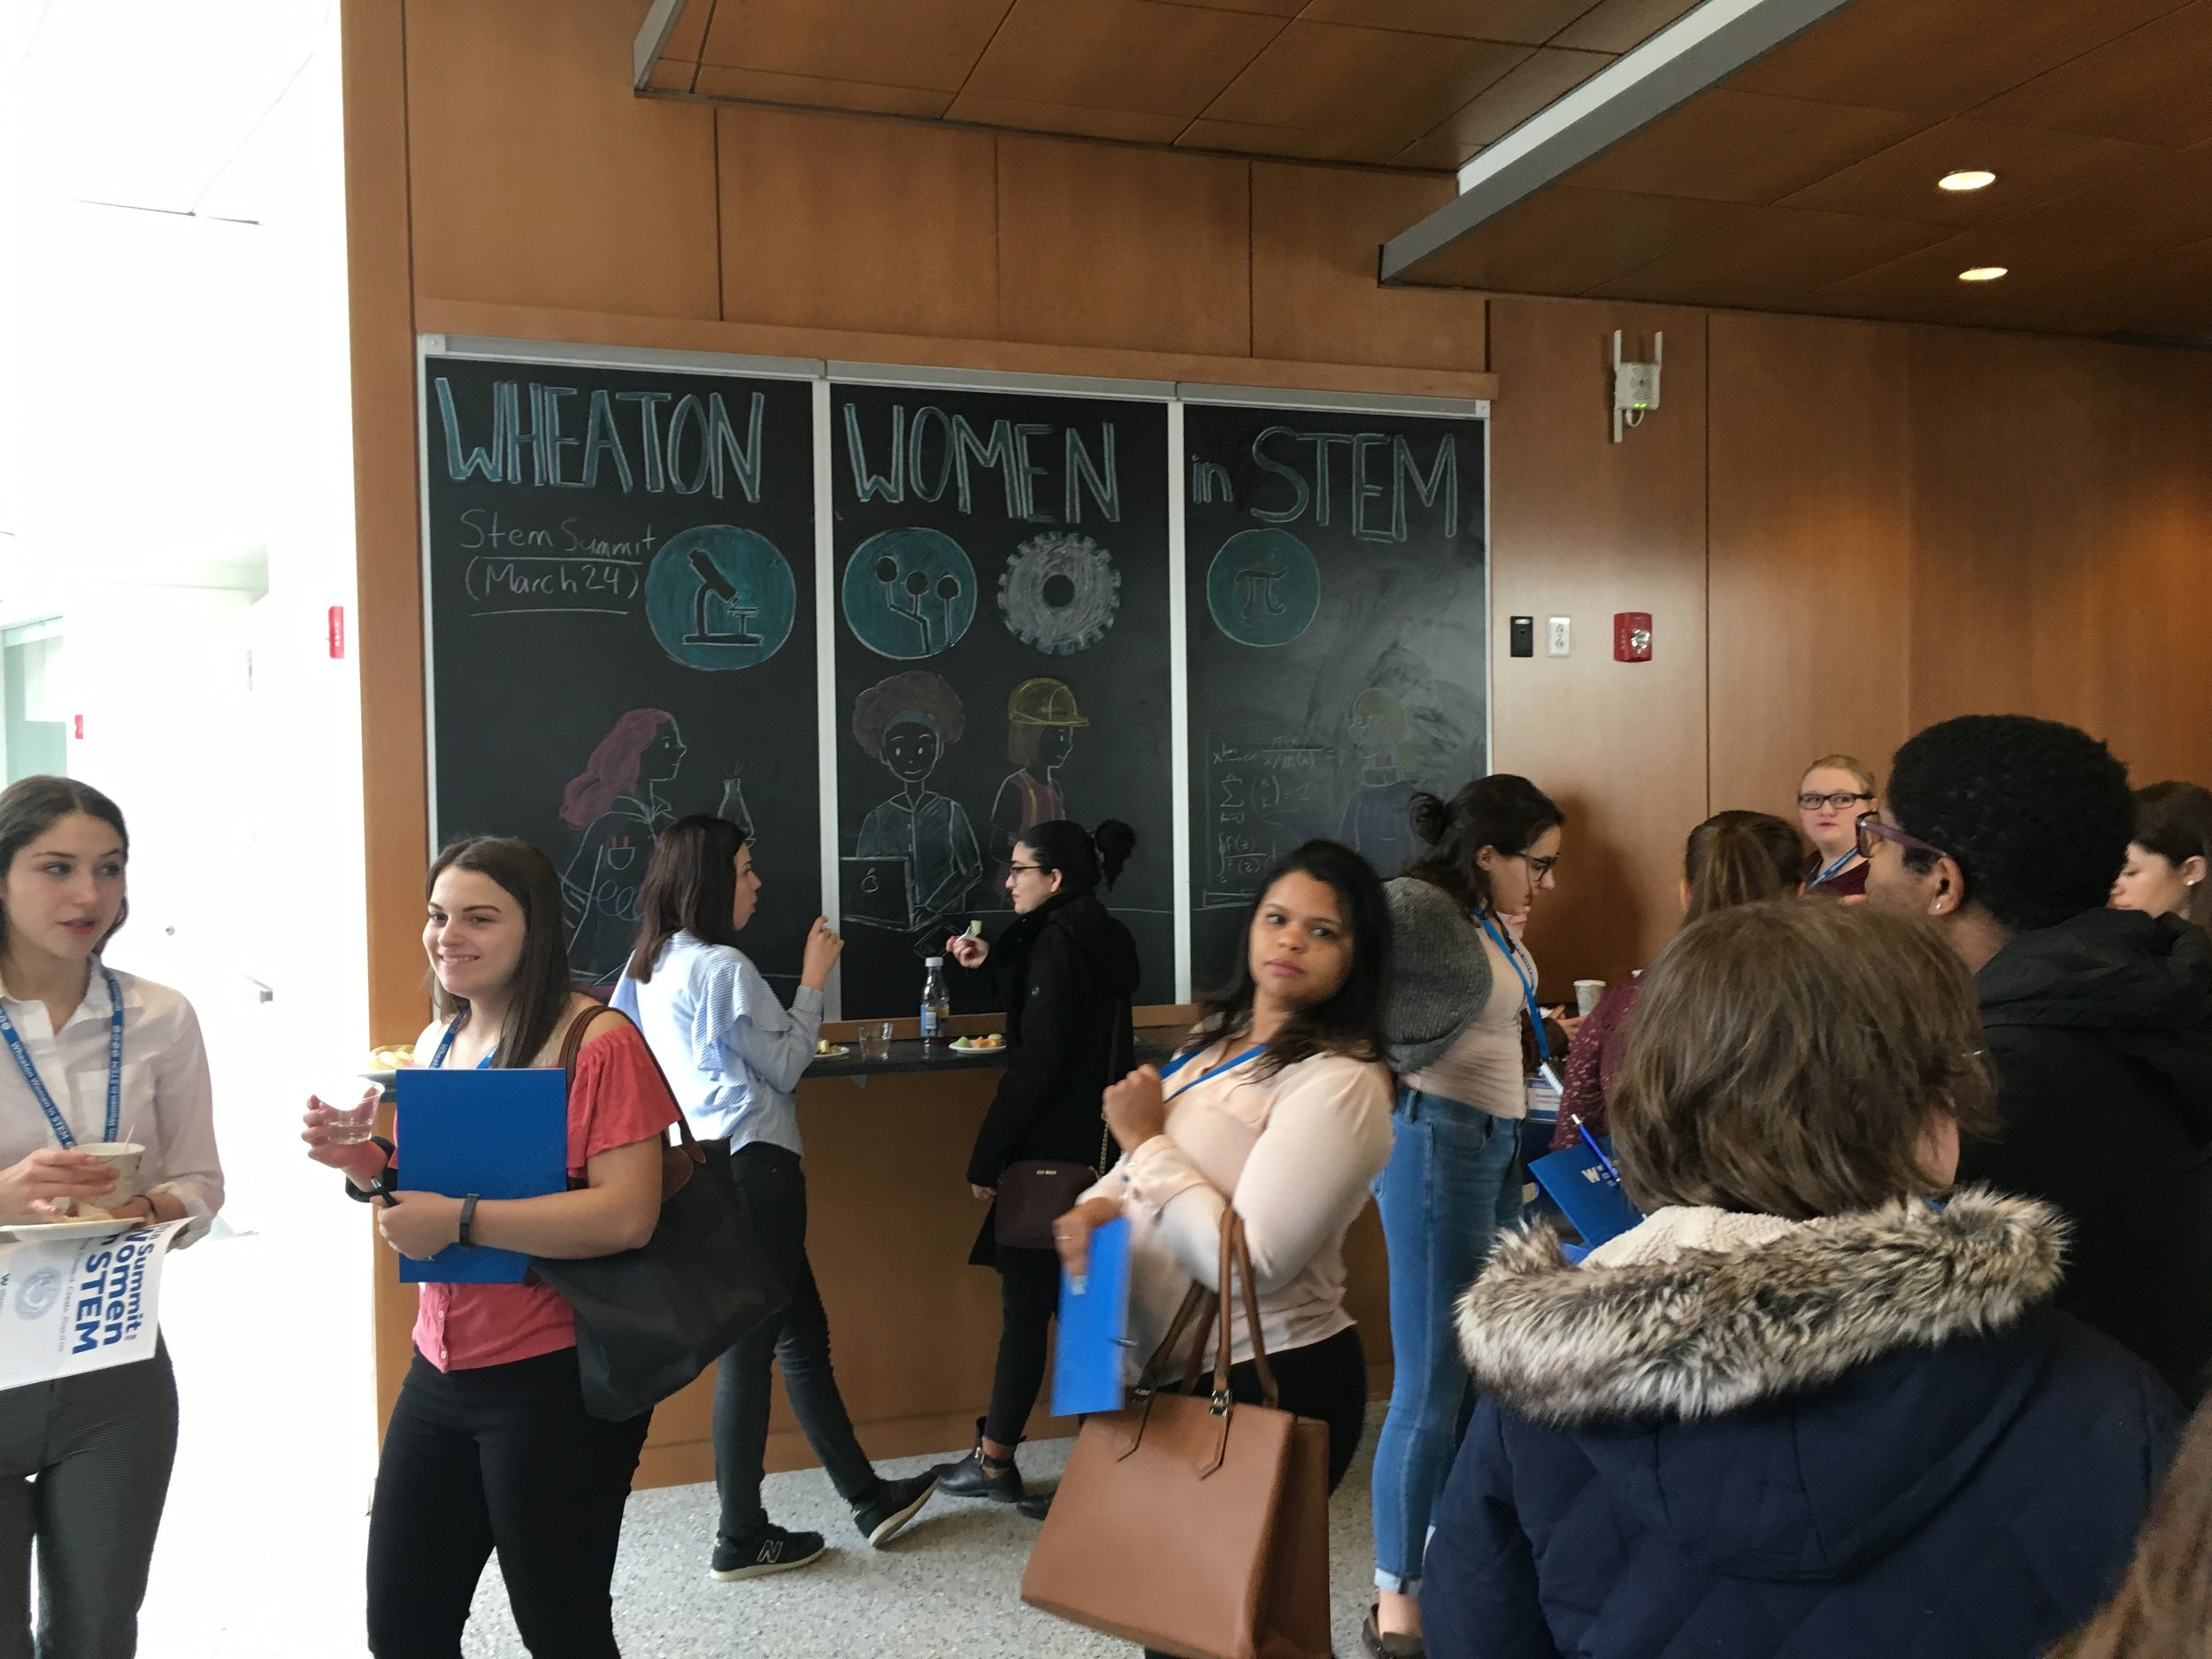 Conference attendees gather in the Wheaton science building.